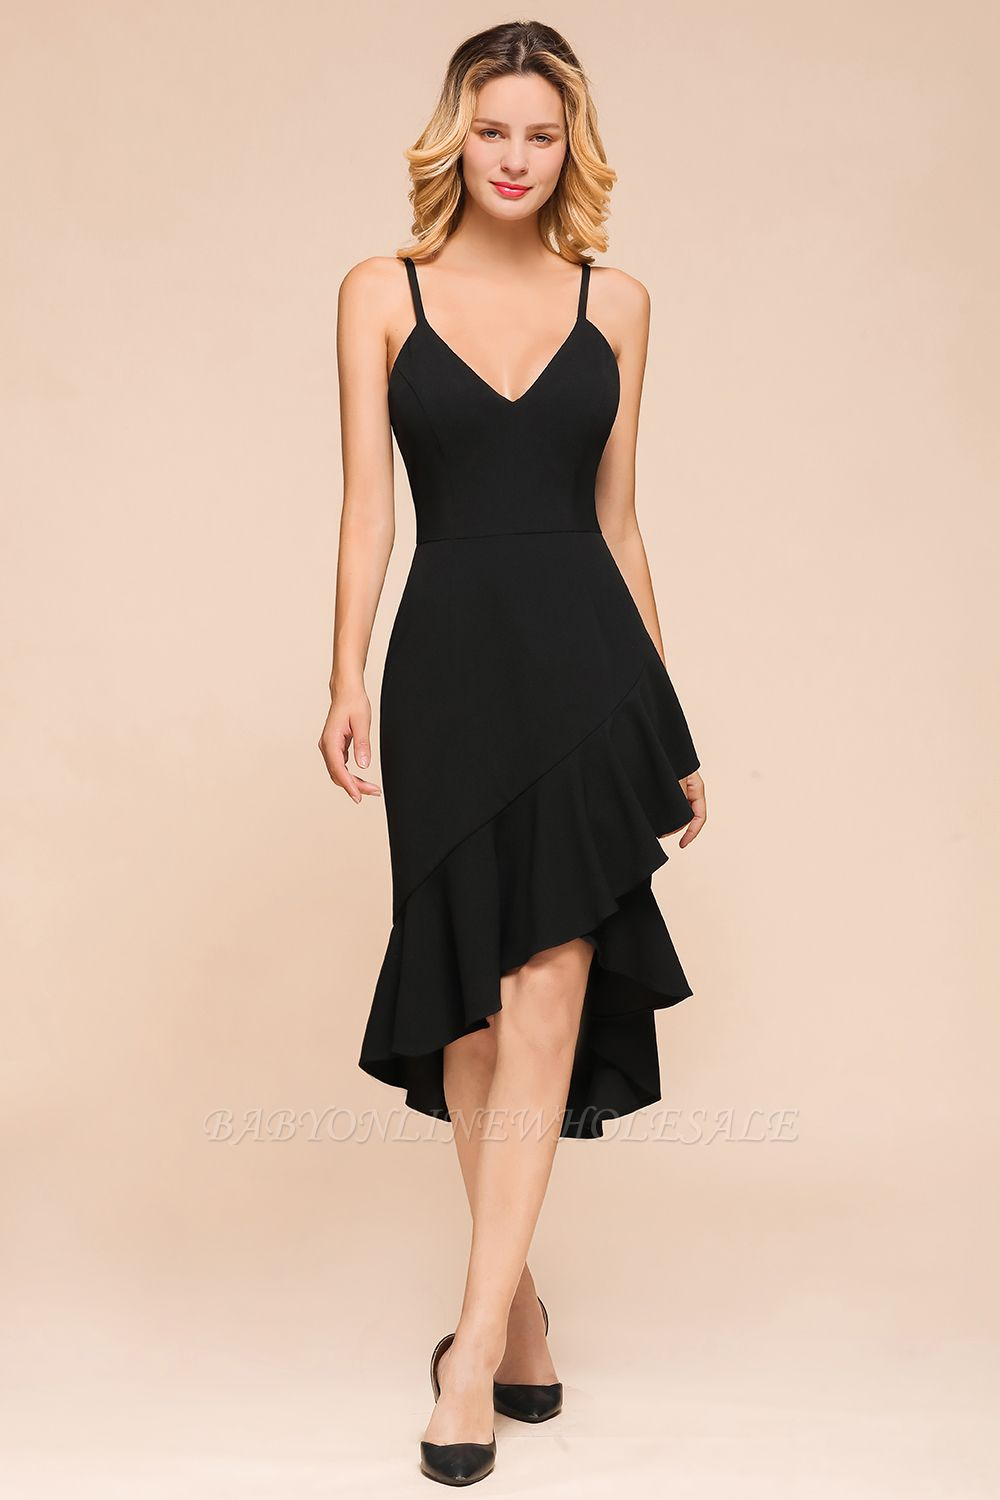 Arnold | Sexy V-neck Spaghetti Strap Ruffles Little Black Dress